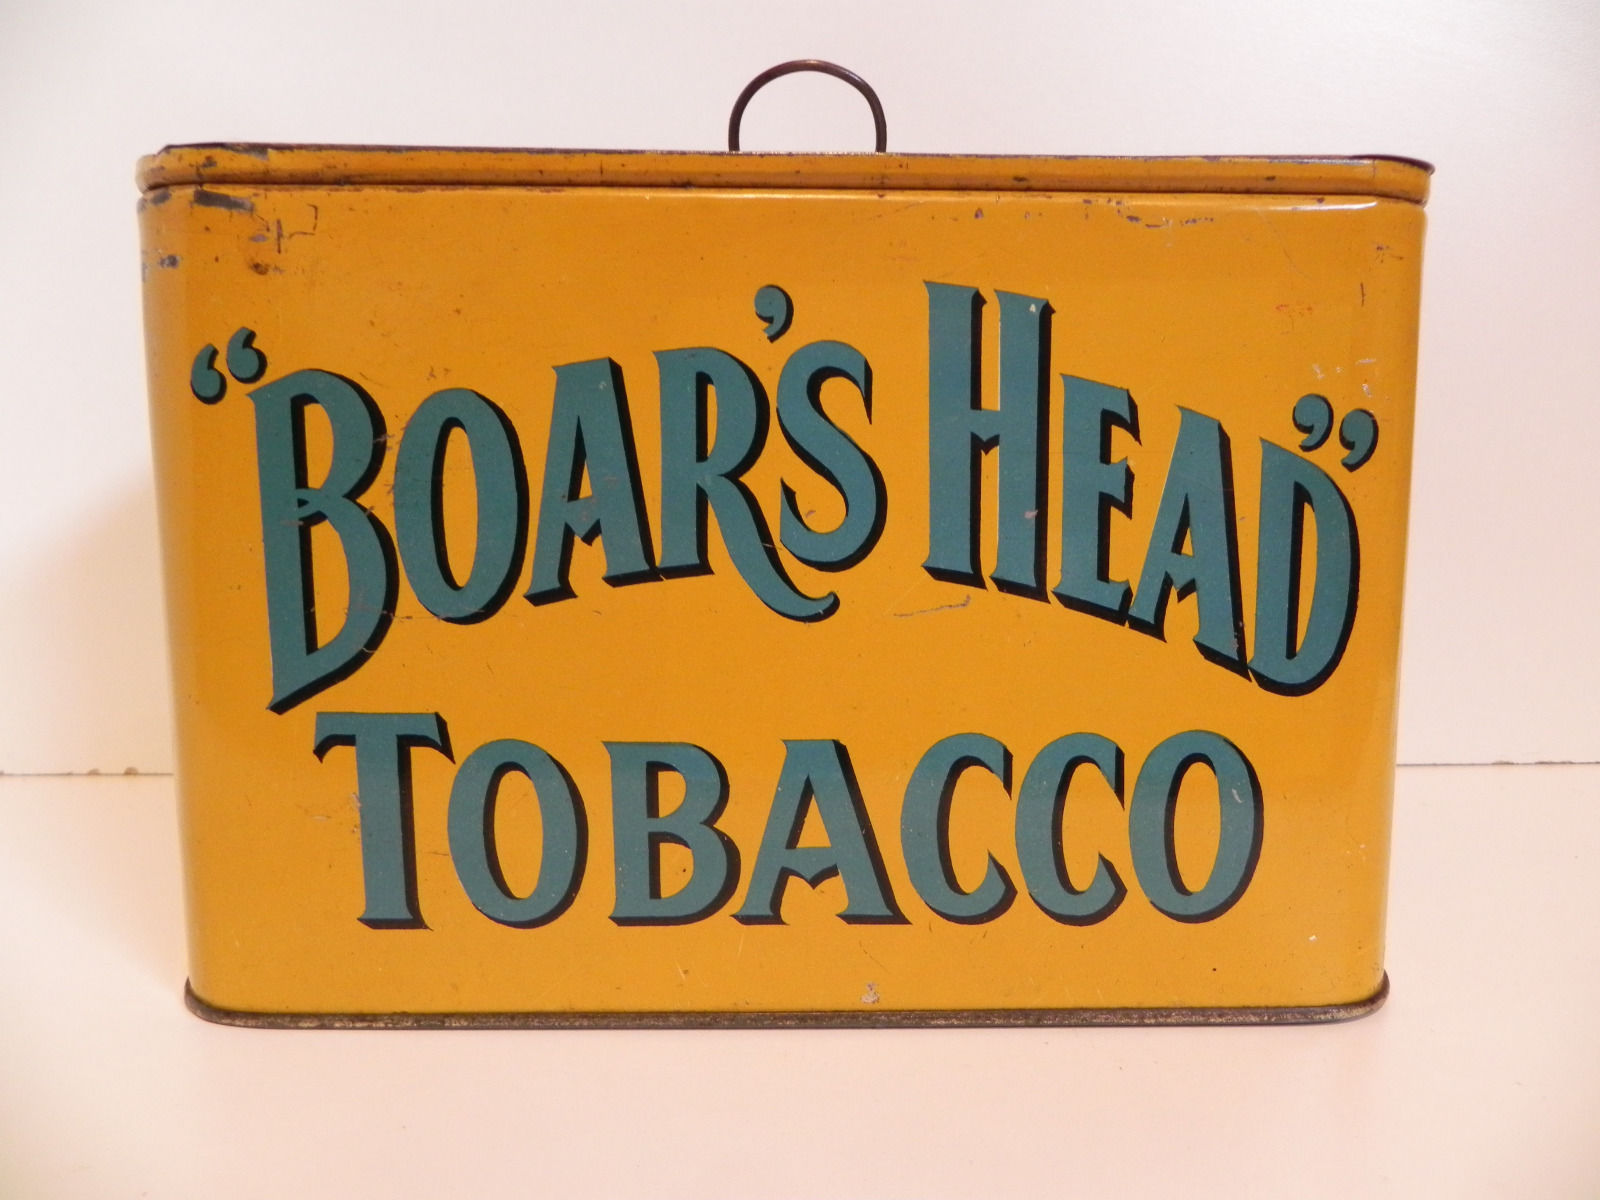 Boar's Head Tobacco Lunch Box Tin, Ca. 1910